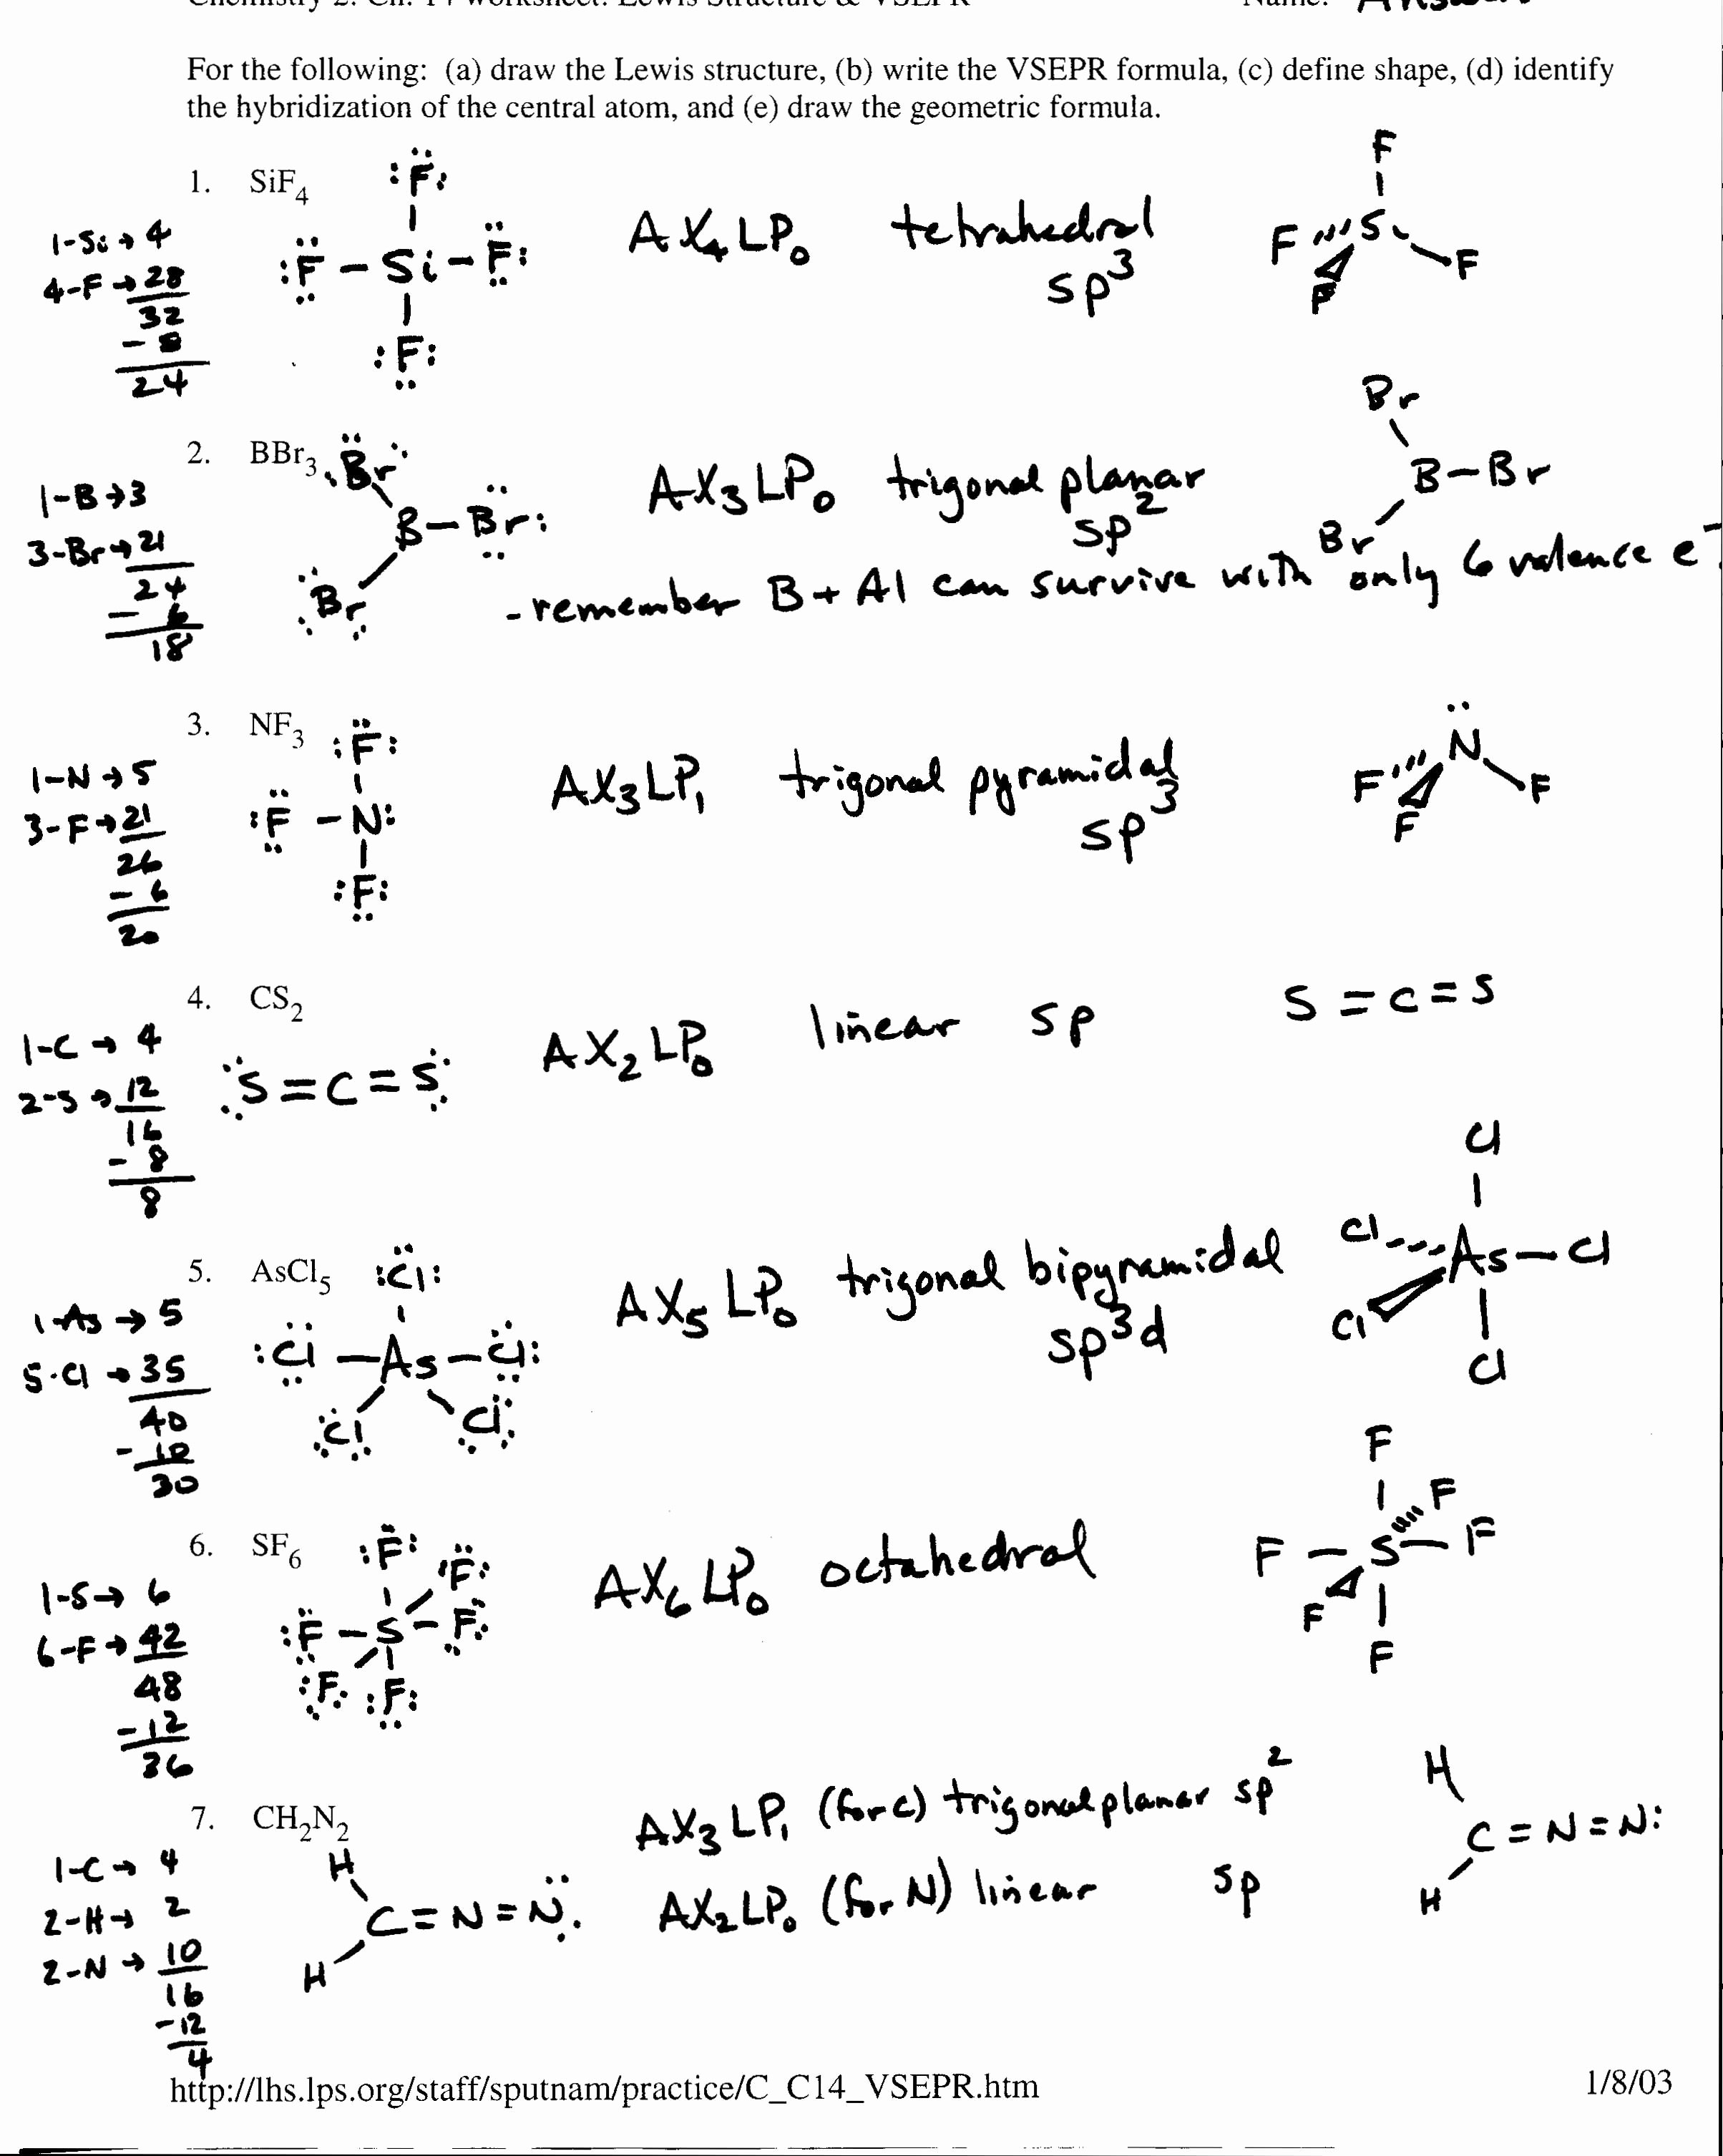 Lewis Dot Diagrams Worksheet Answers Fresh Lewis Dot Diagram Worksheet with Answers the Best